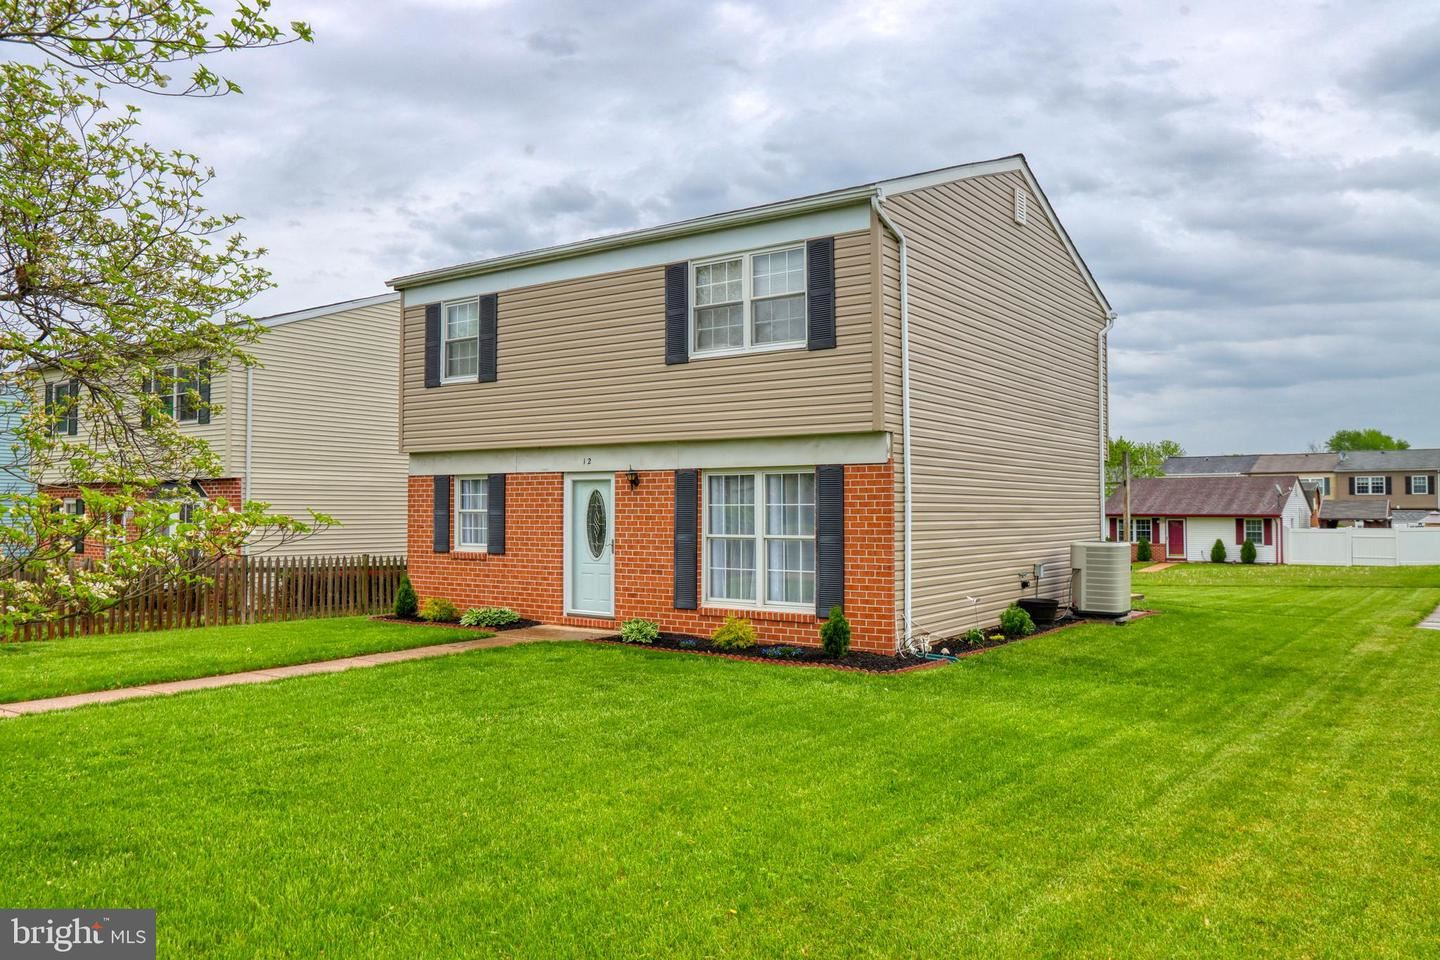 12 BAUMGARDNER AVE, Taneytown, MD 21787 - MLS#: MDCR204058